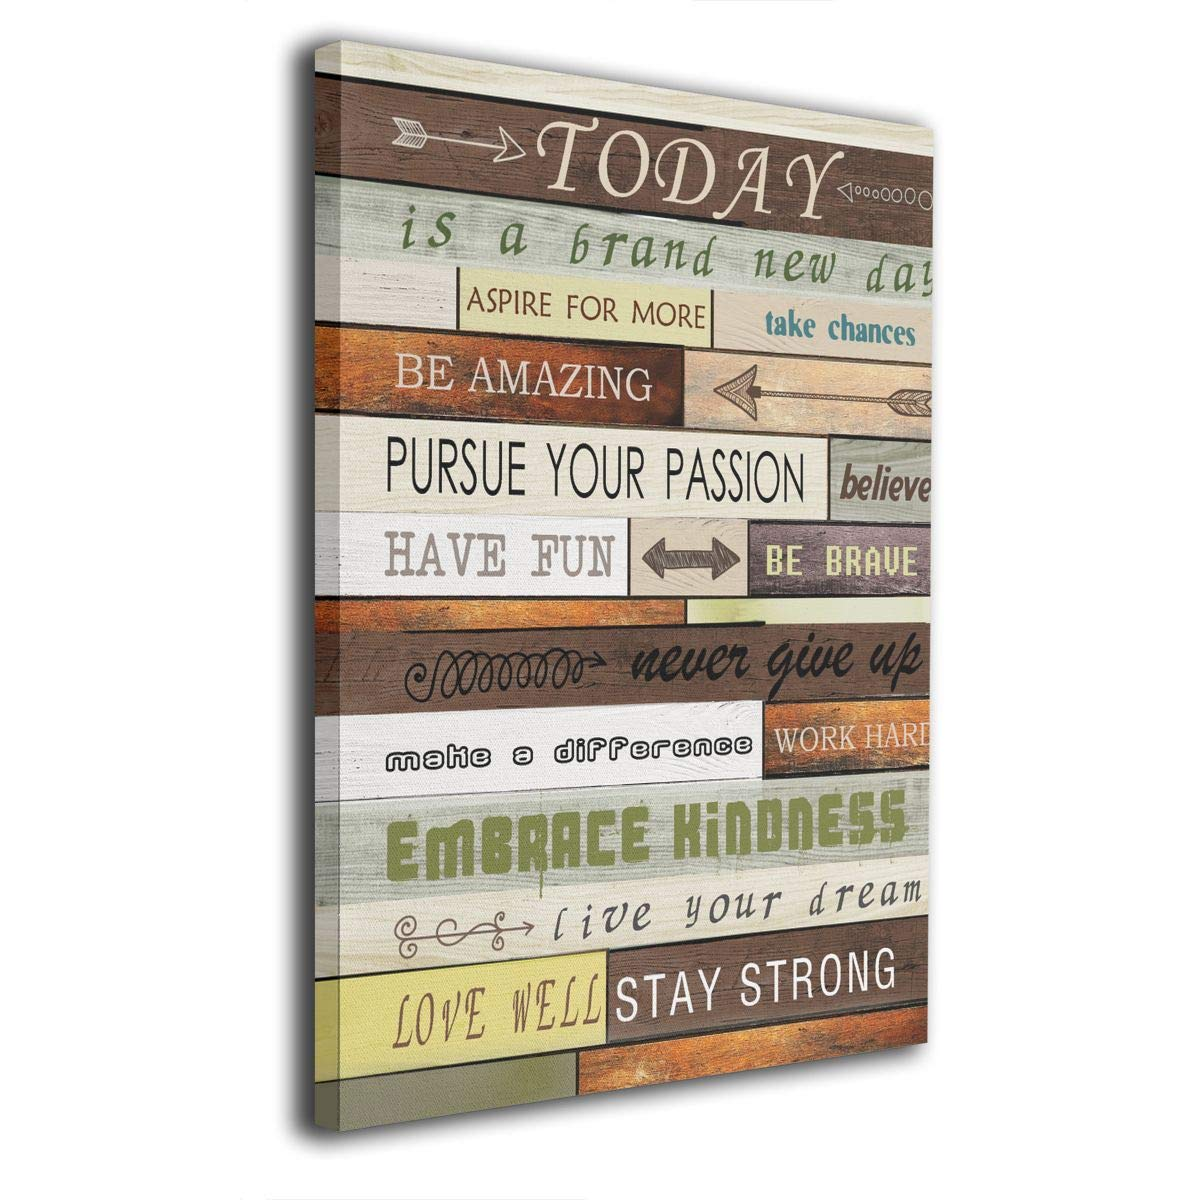 Art Logo Today Is A Day Canvas Print Inspirational Quotes Wall Art Painting For Home Decor Vintage Picture Giclee Artwork Decoration Wood Grain Looking Textual Gallery Wrapped 12 X16 Amazon In Home Kitchen